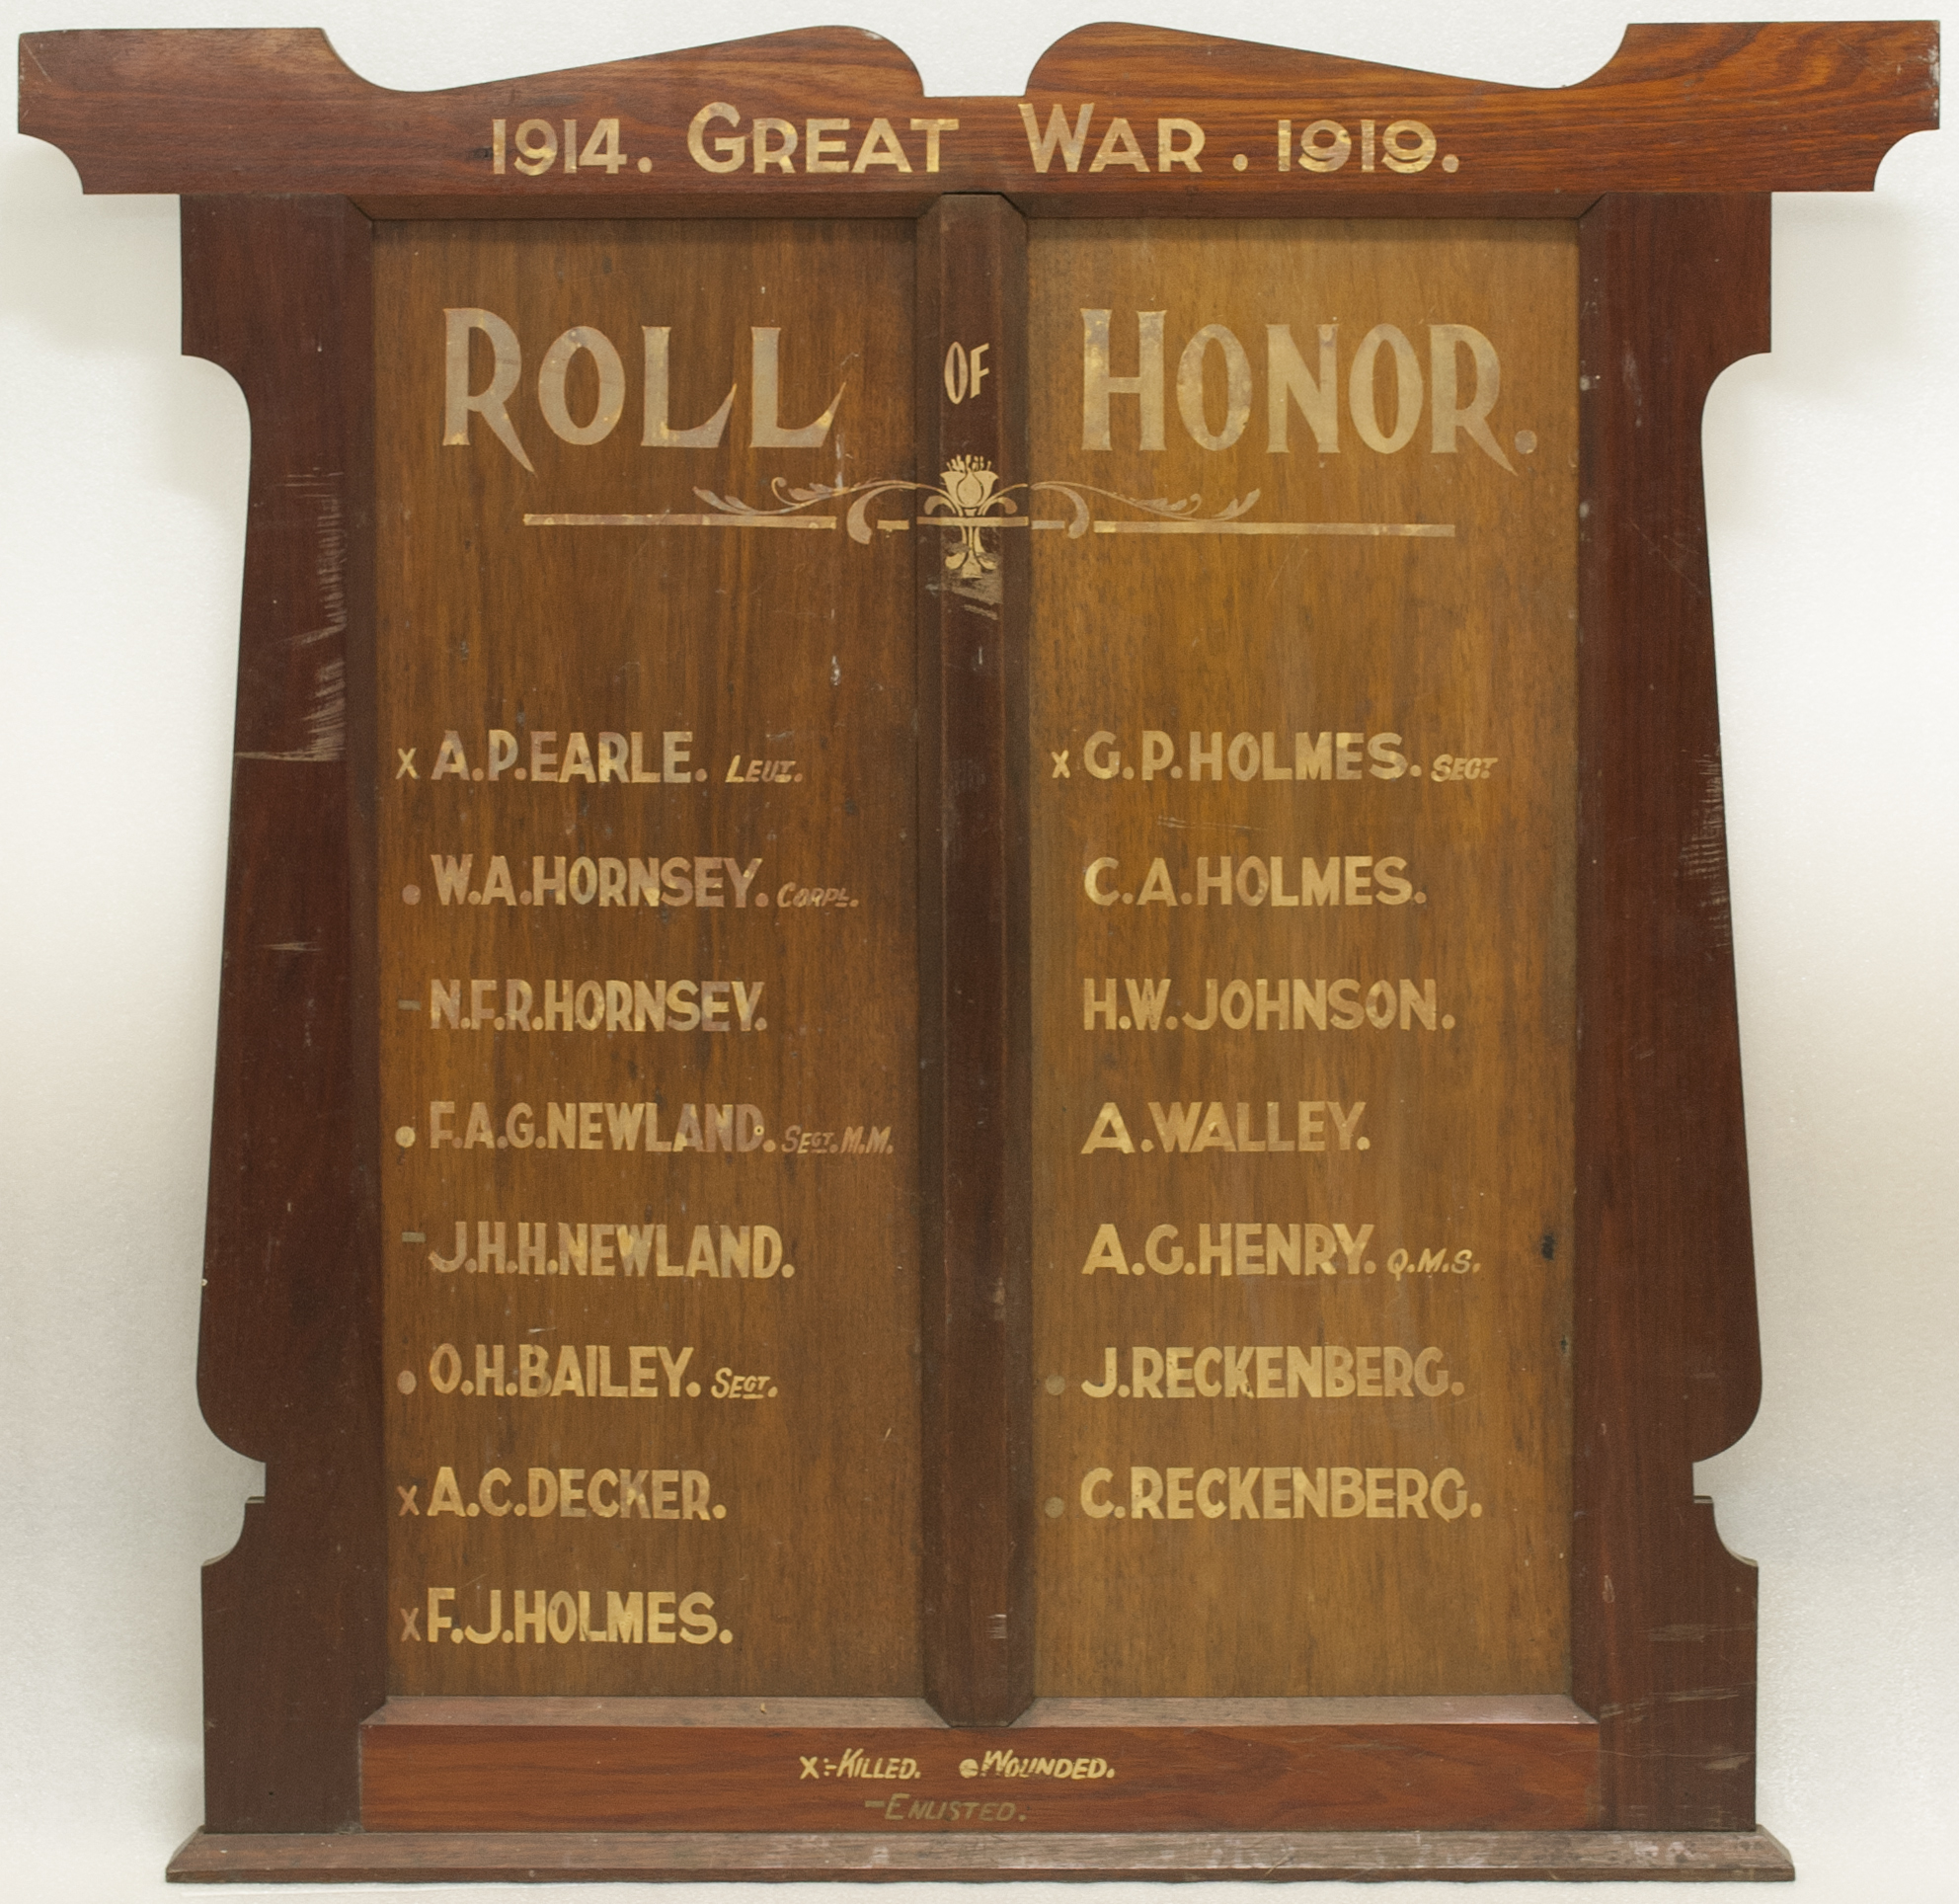 St. Cuthbert's Church and Sunday School Roll of Honor